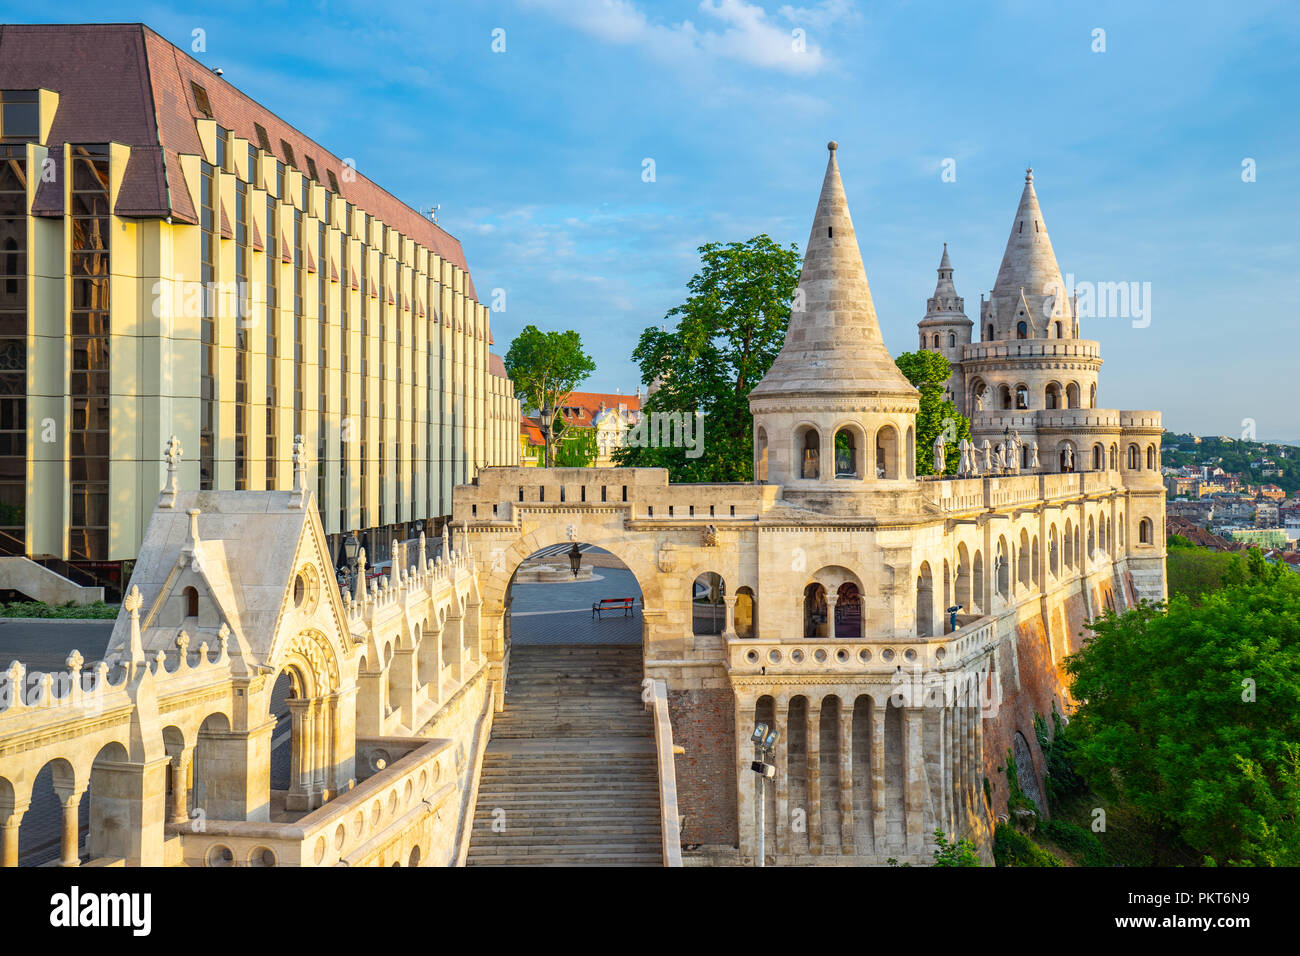 Fisherman's Bastion in Budapest city, Hungary. - Stock Image